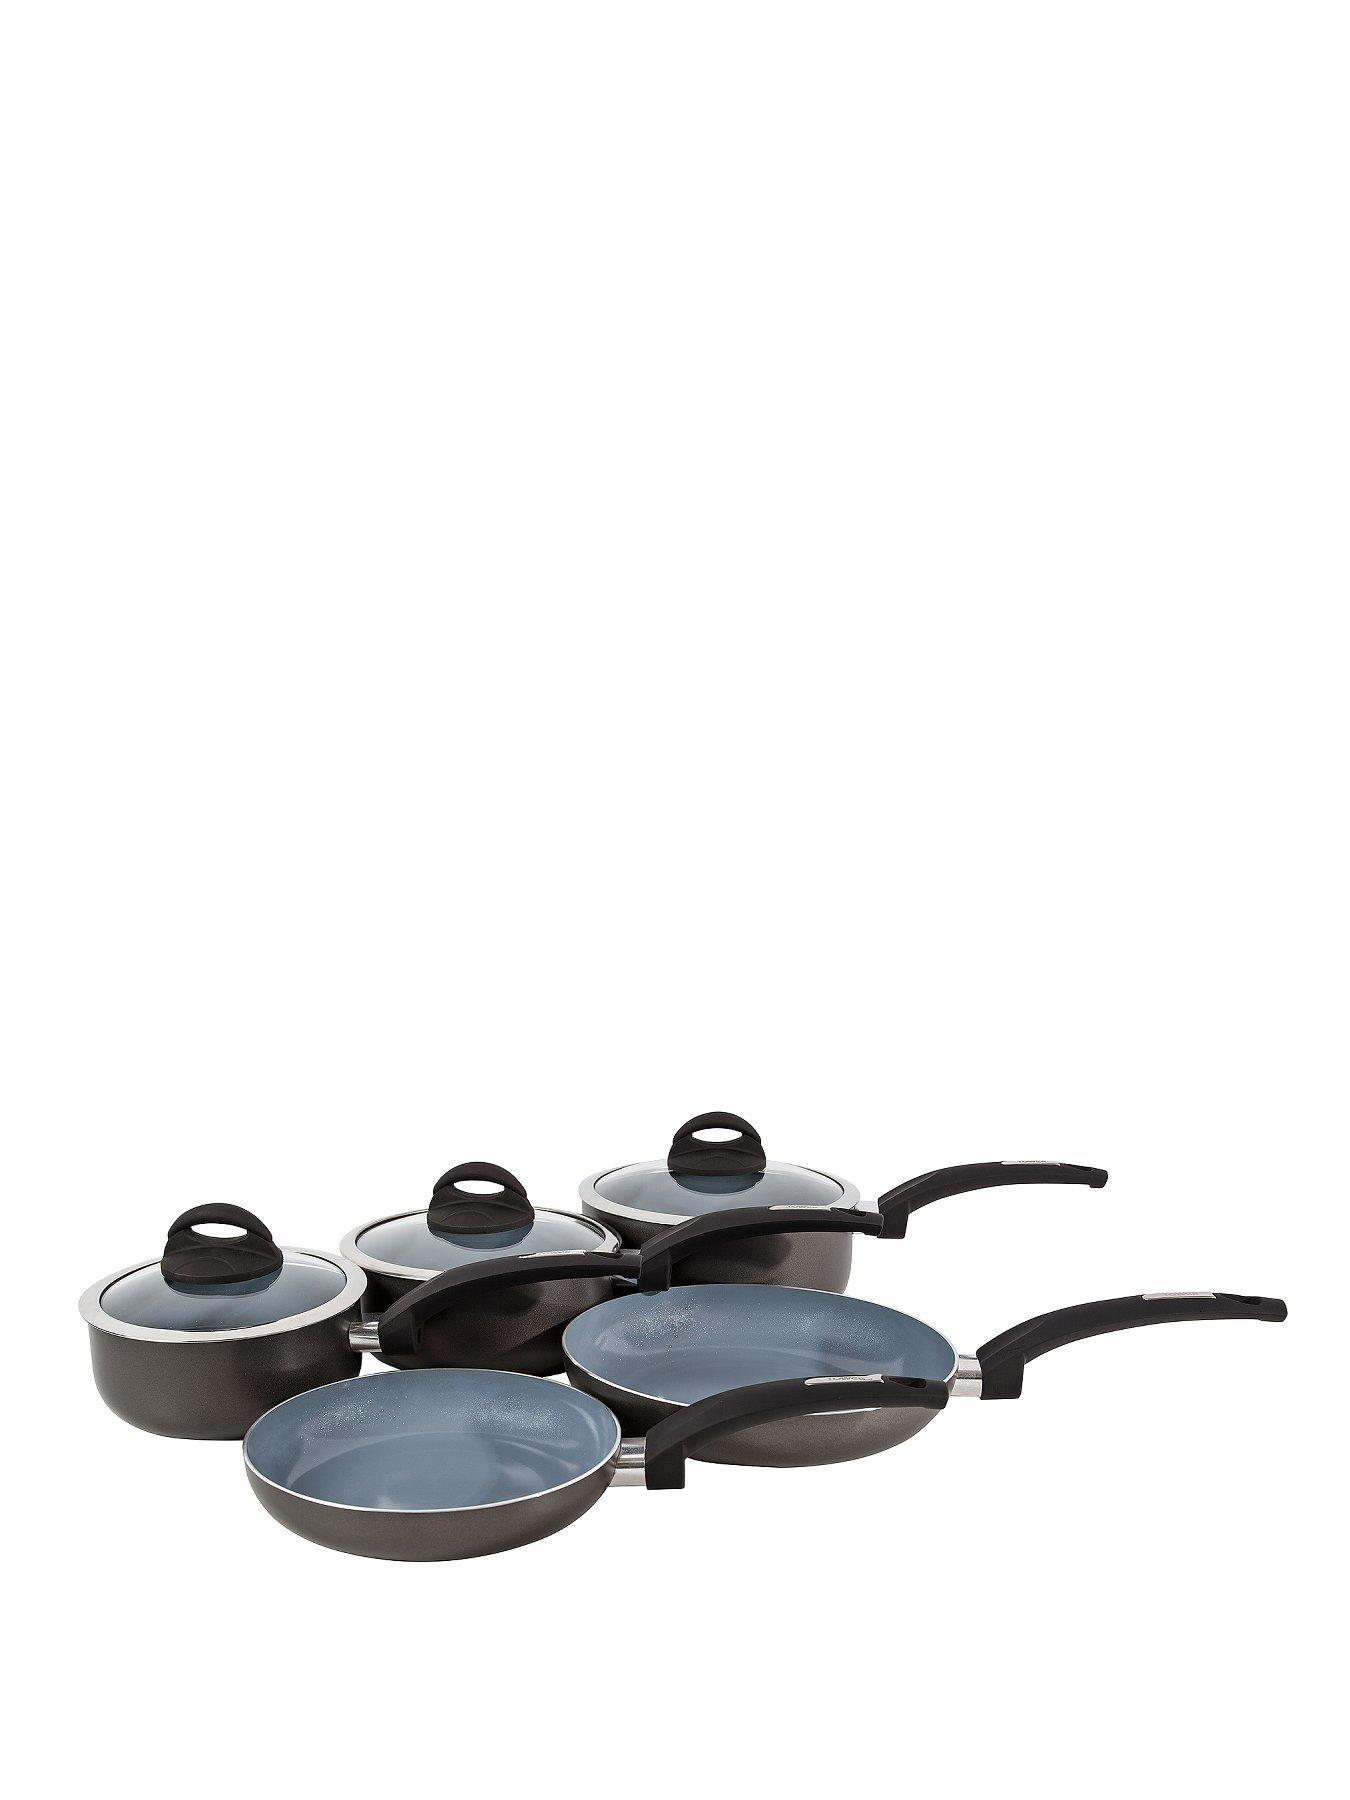 Tower T80303 Ceramic-Coated five-piece Pan Set